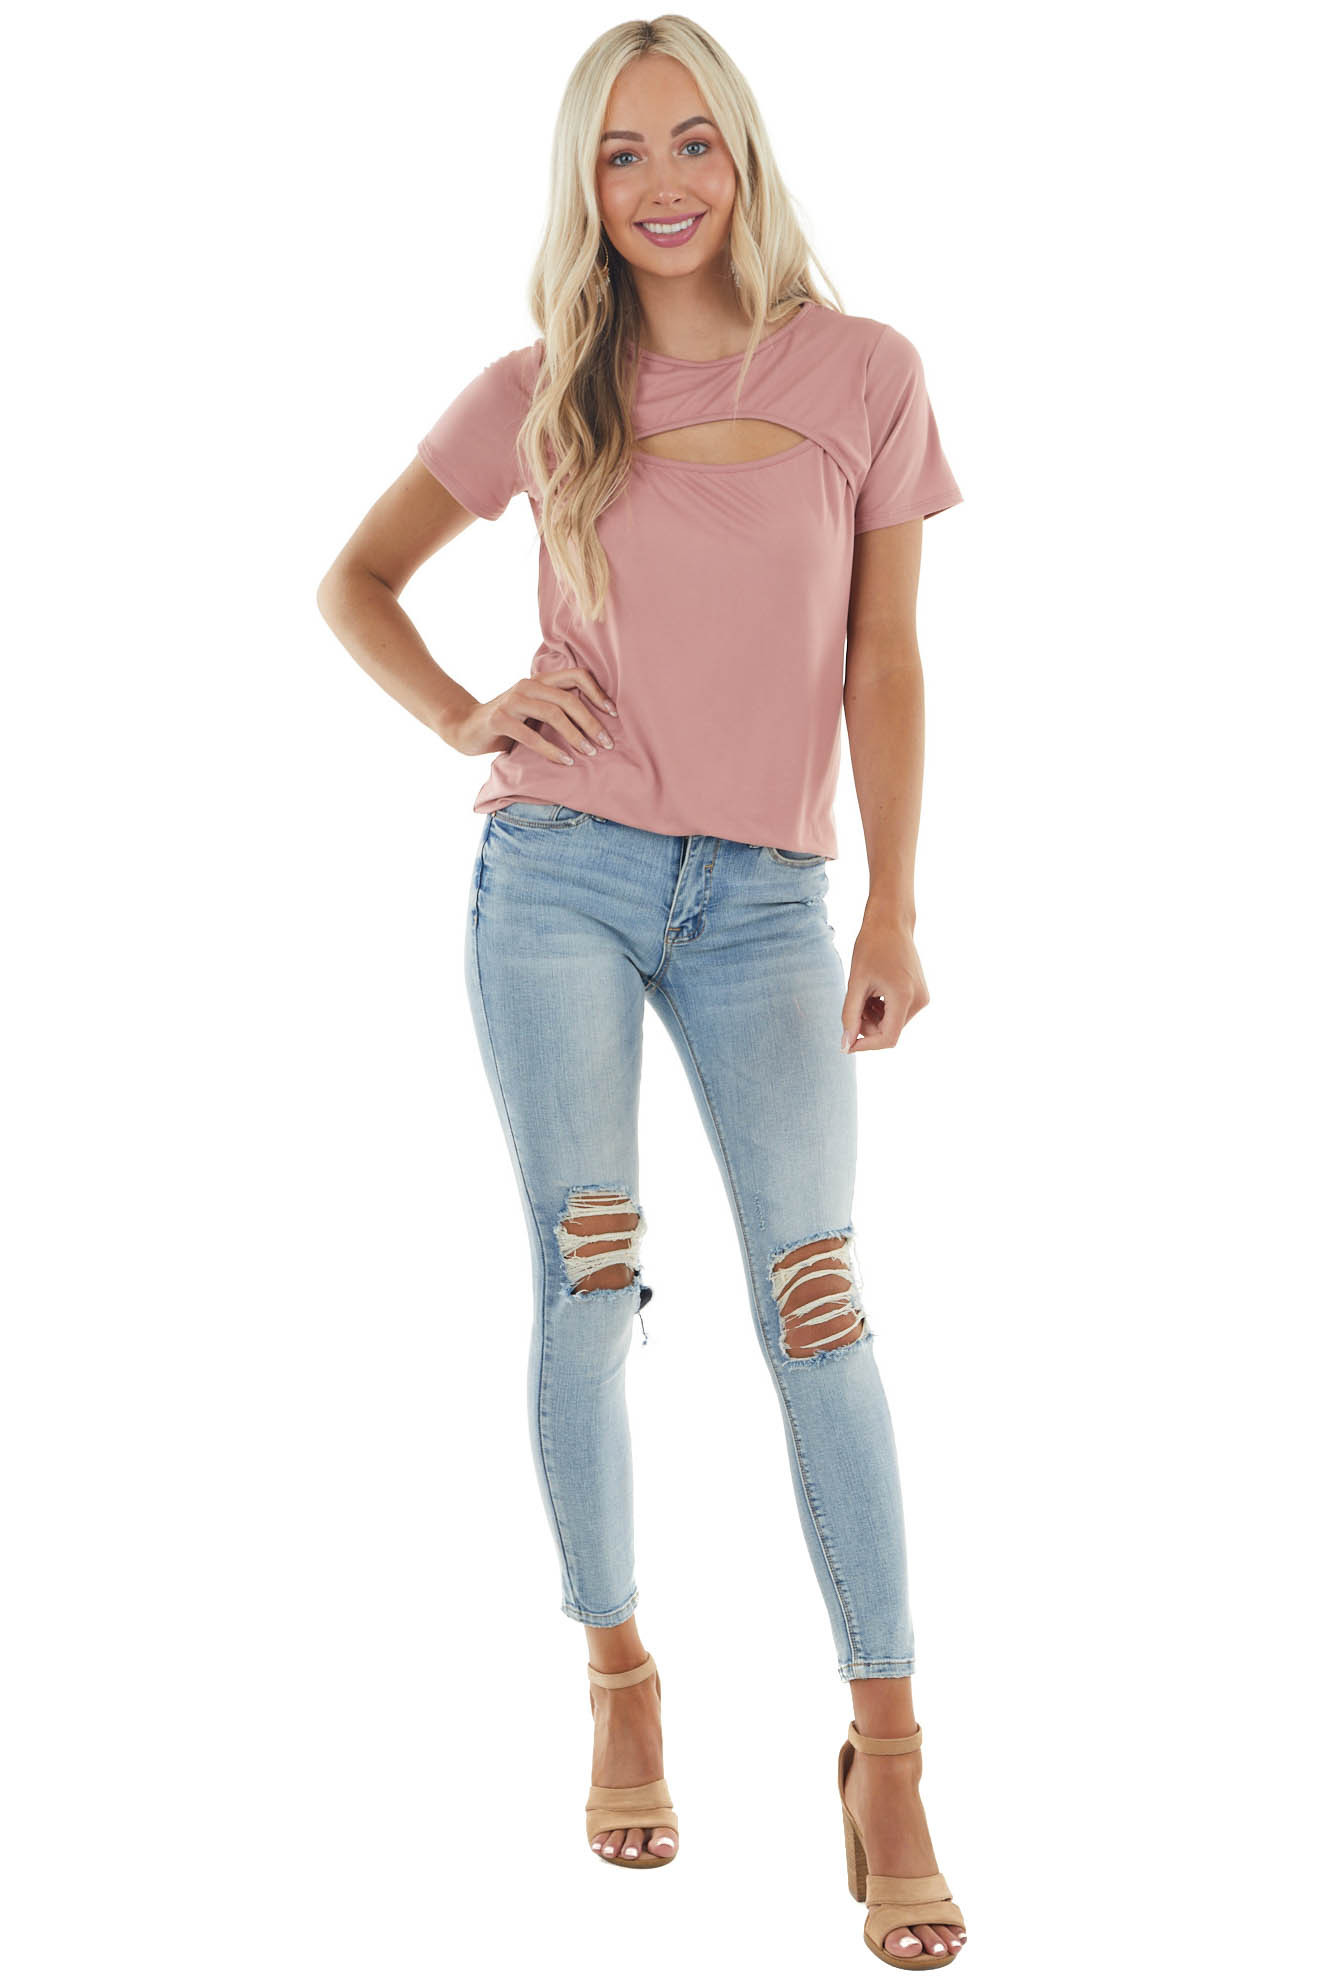 Dusty Rose Short Sleeve Soft Knit Top with Chest Cut Out